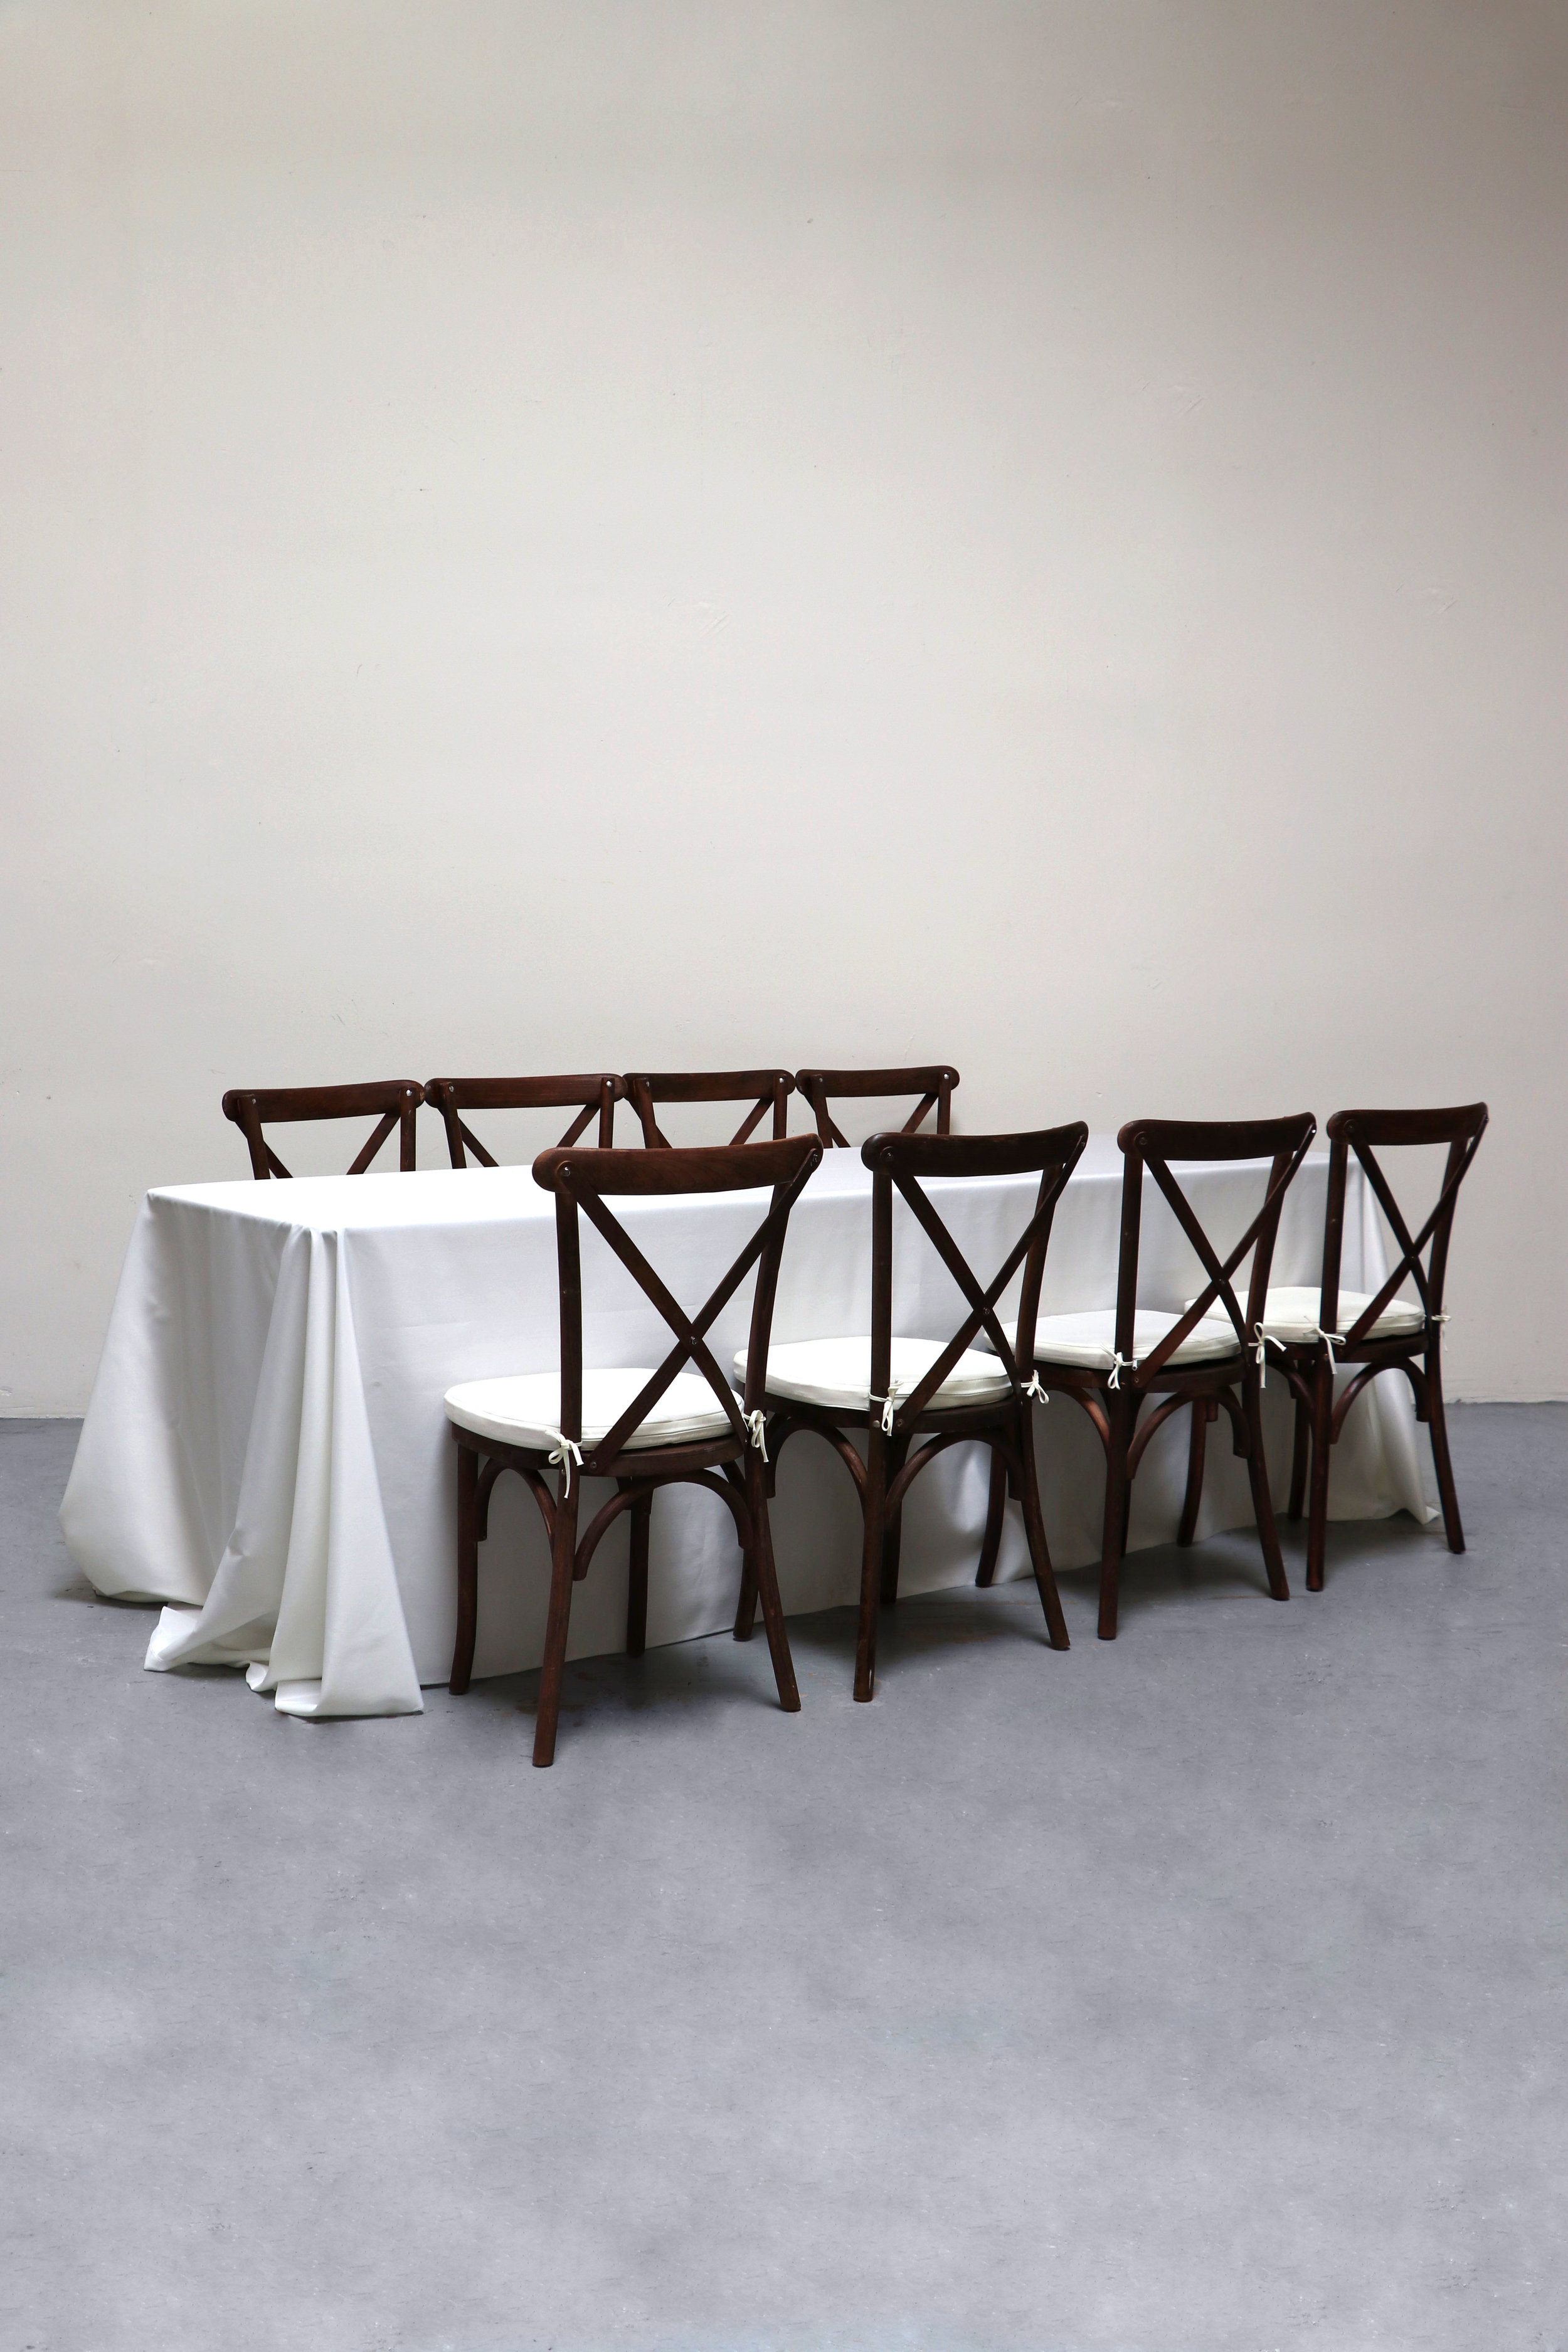 $80 1 Banquet Table with 8 Cross-Back Chairs